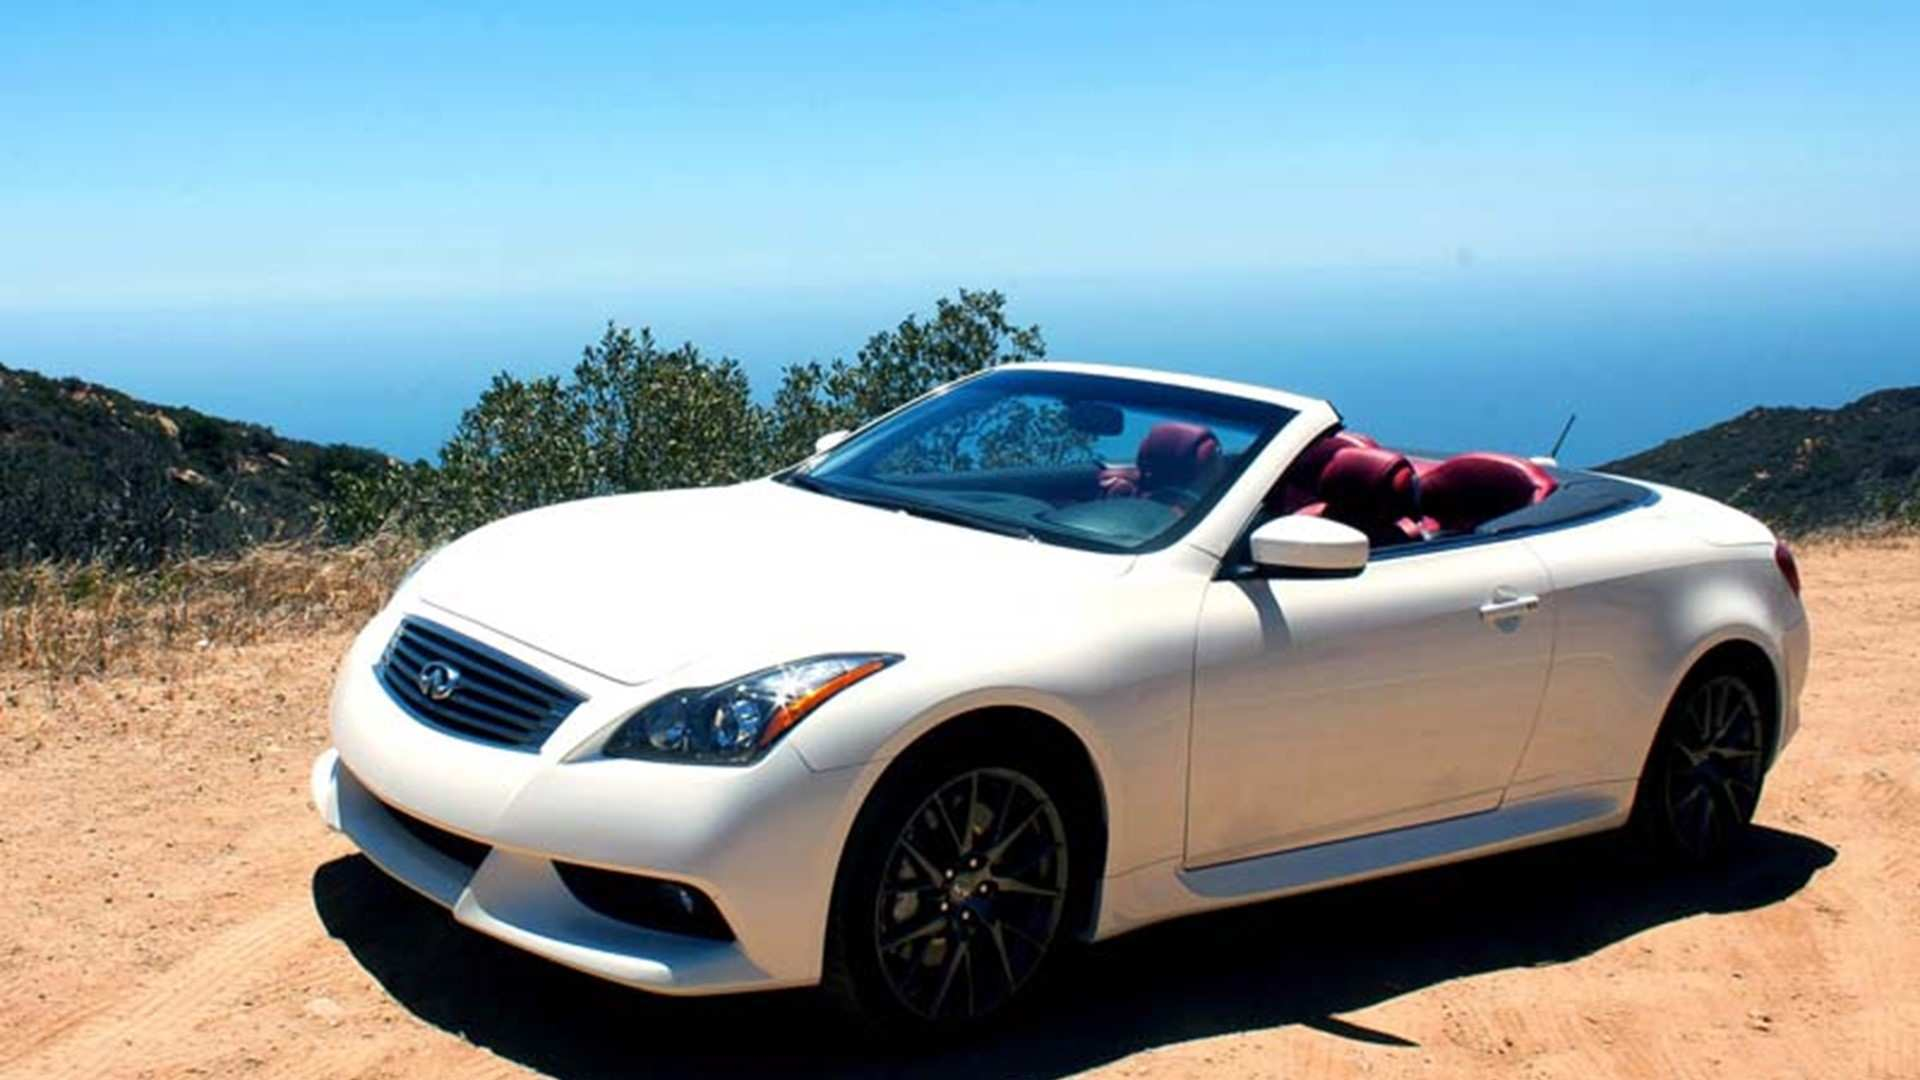 61 A 2020 Infiniti Q60 Coupe Convertible Release Date